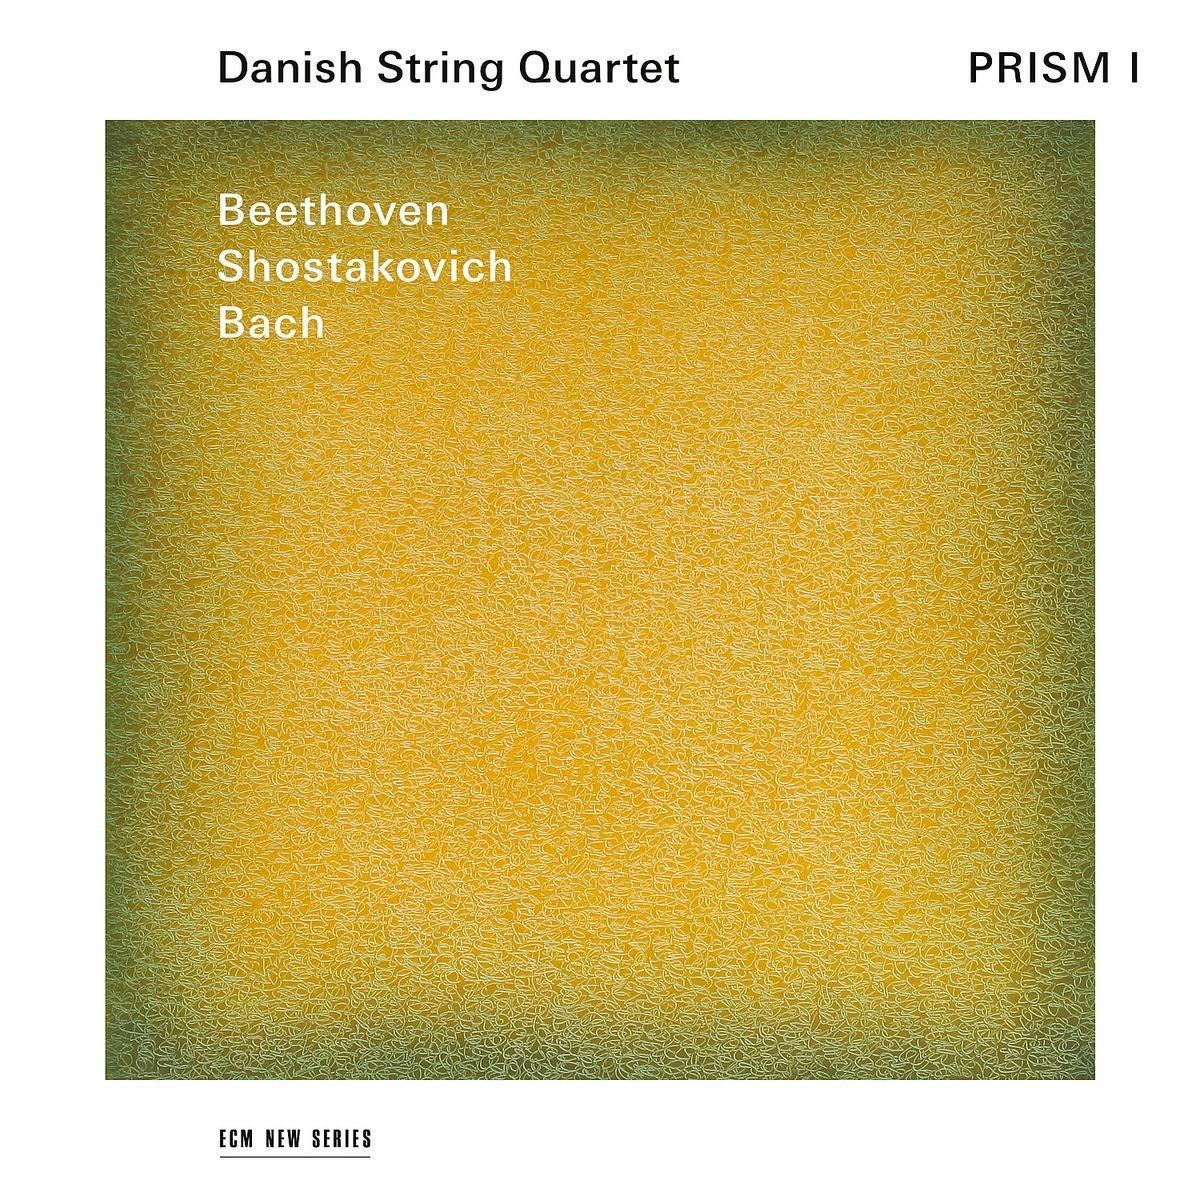 . @DanishQuartets Prism I is now available! The whole approach invites active, committed listening, from the wistful introspection of the Shostakovich to the extended, dazzling complexities of the Beethoven. (@guardian) ecm.lnk.to/DanishStringQu…